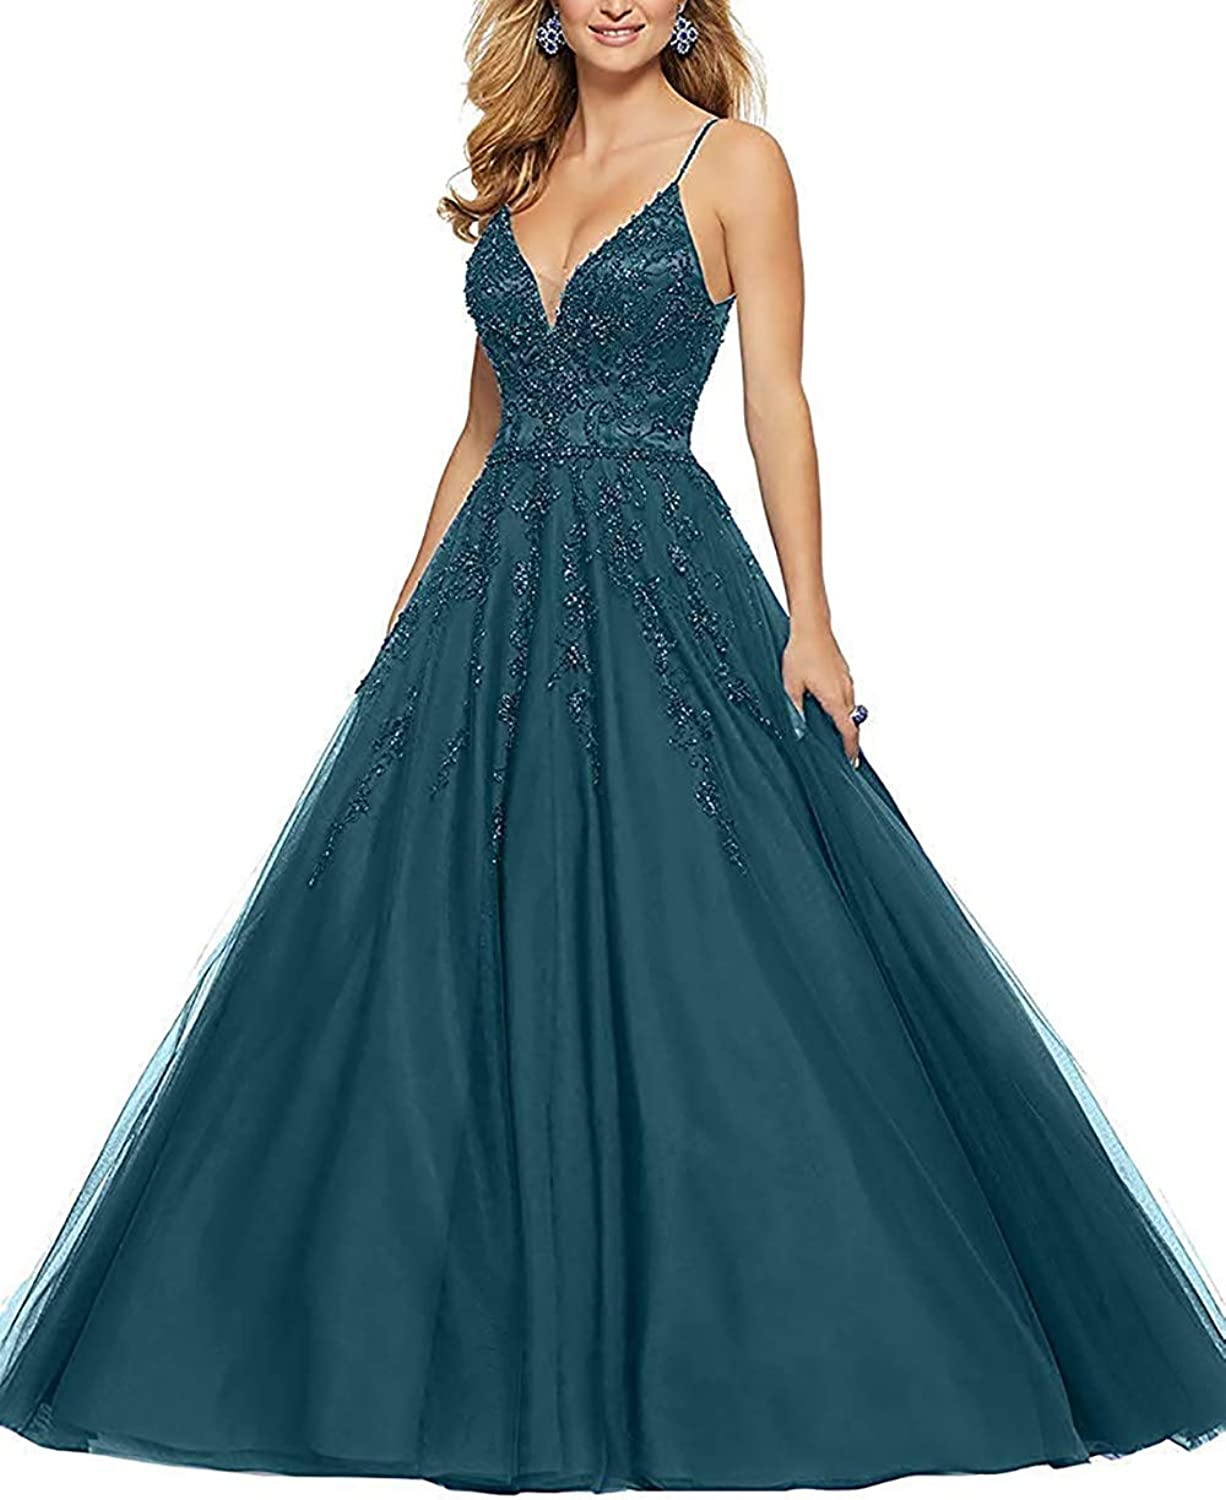 ANFF Women's Hand Made Prom Dresses Long Beaded Backless Evening Gowns